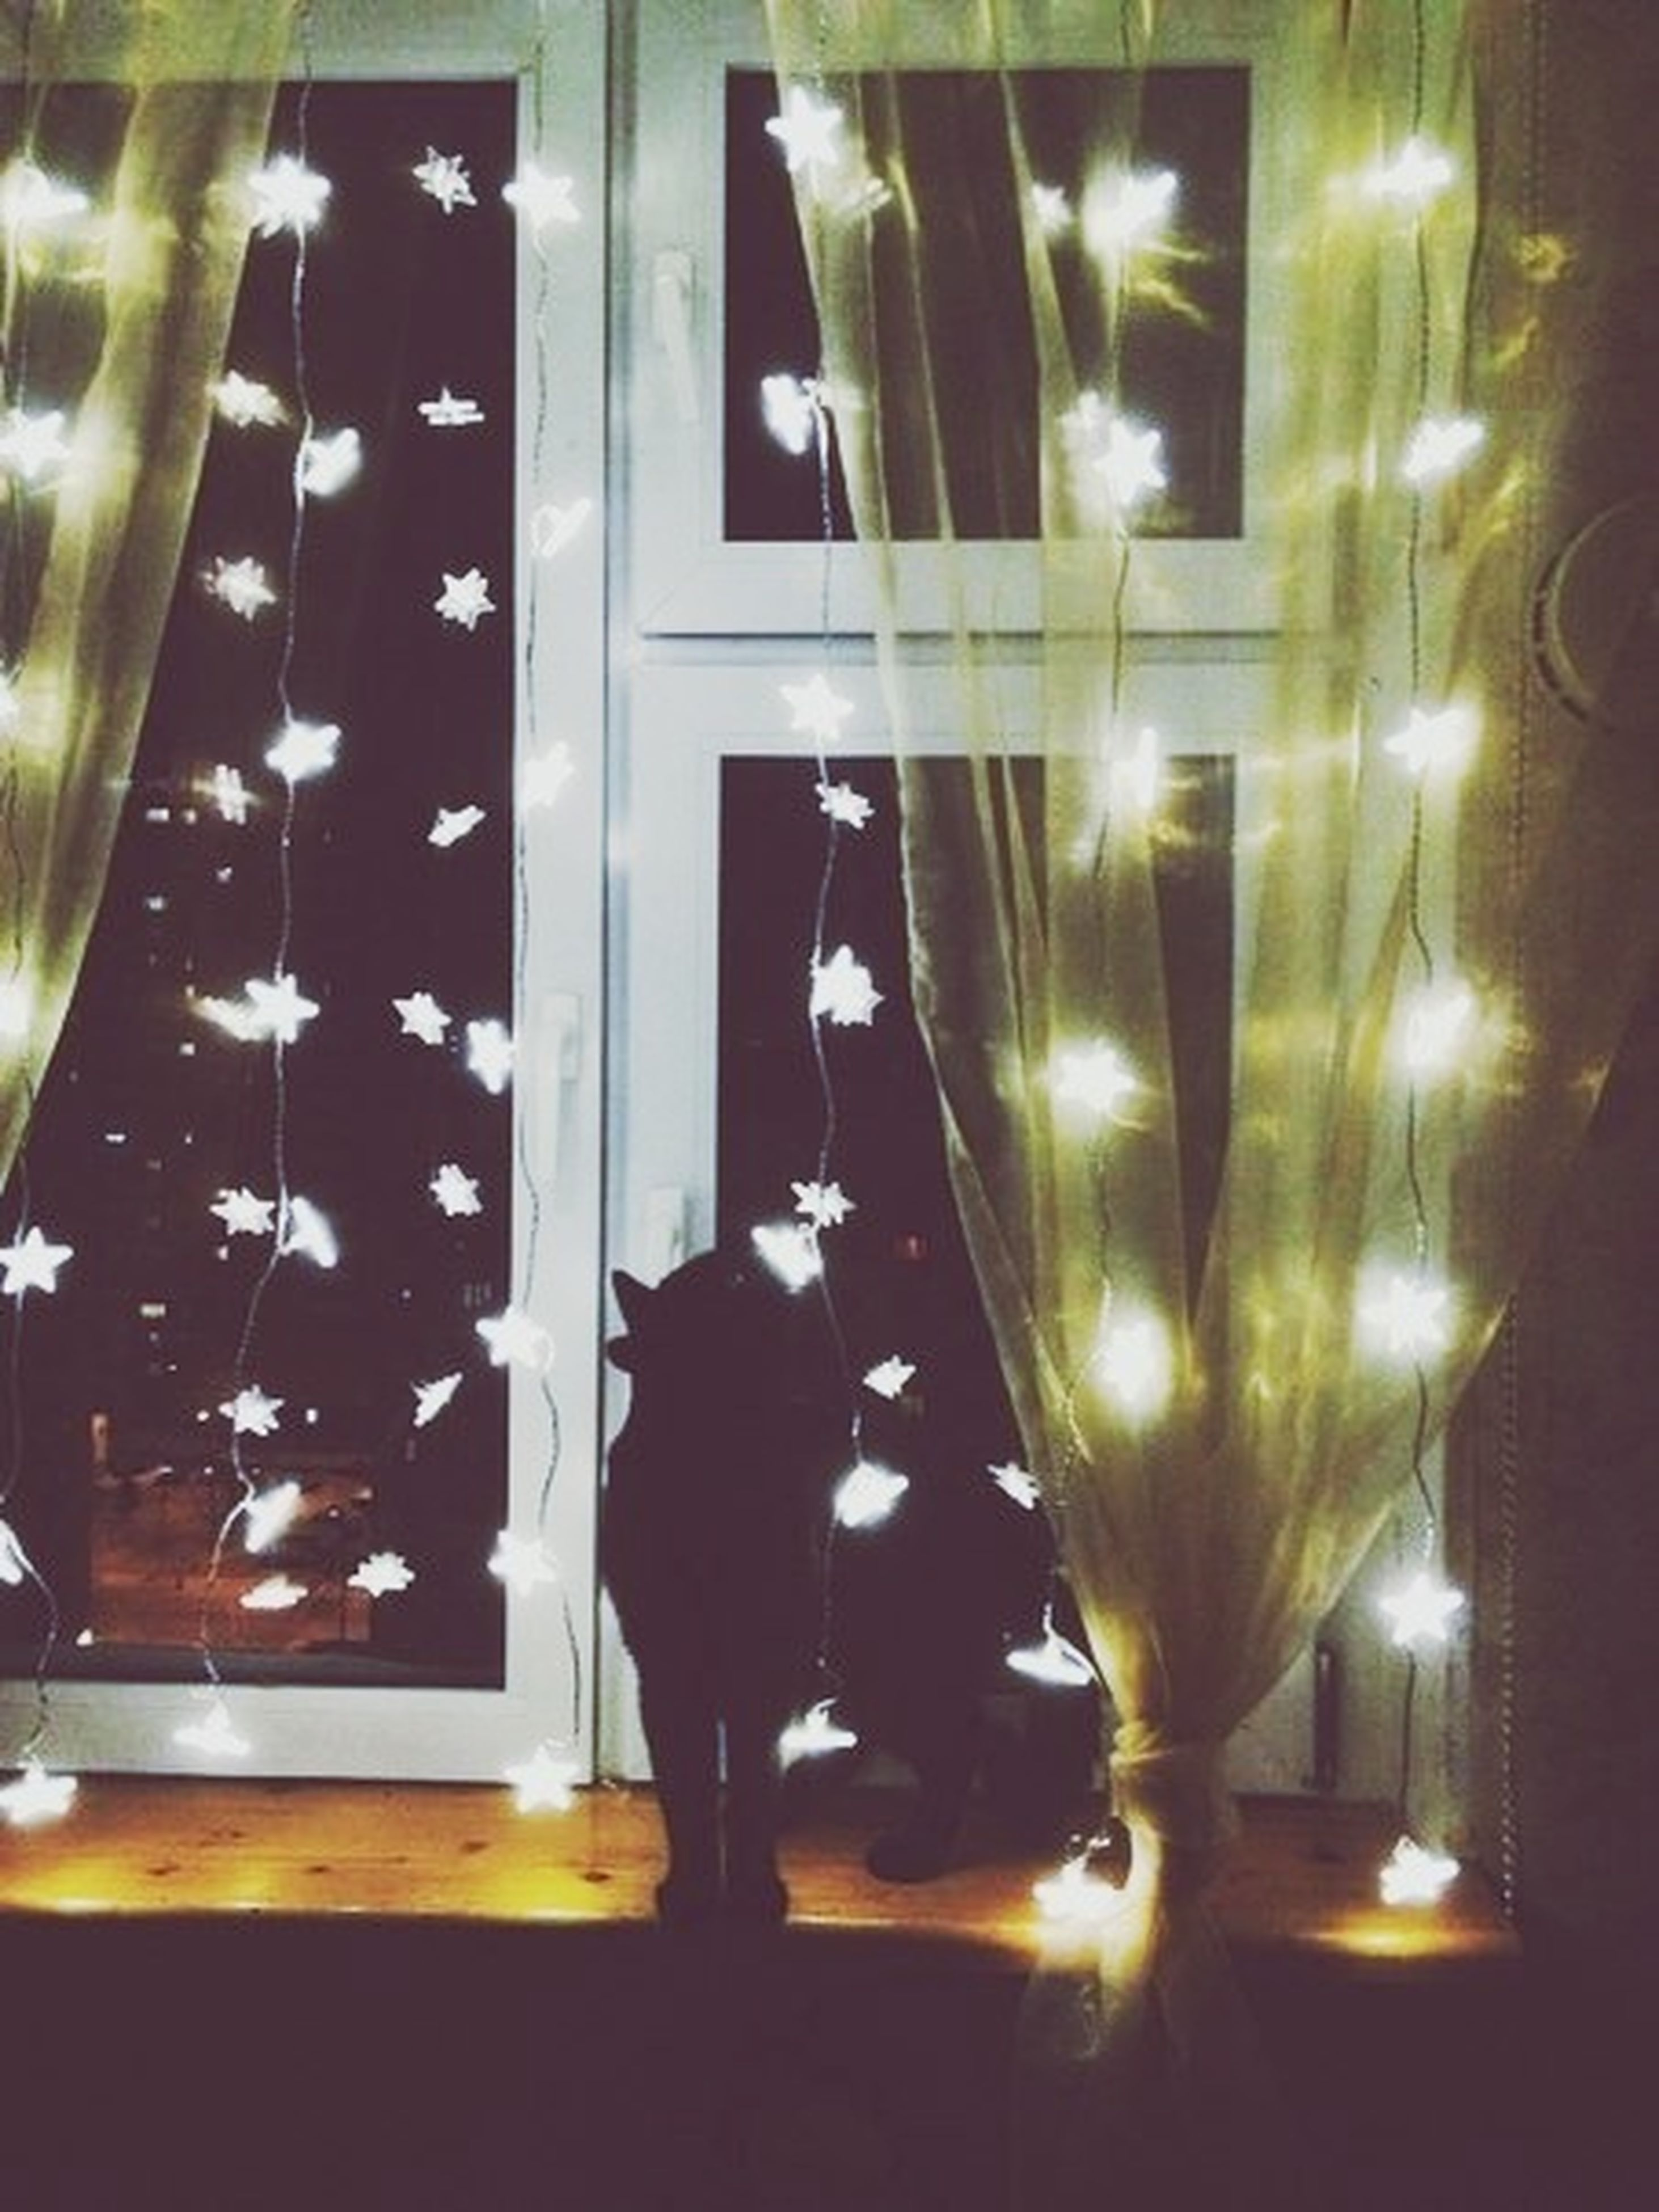 indoors, window, illuminated, glass - material, home interior, curtain, transparent, silhouette, standing, lighting equipment, full length, rear view, lifestyles, night, reflection, sunlight, dark, person